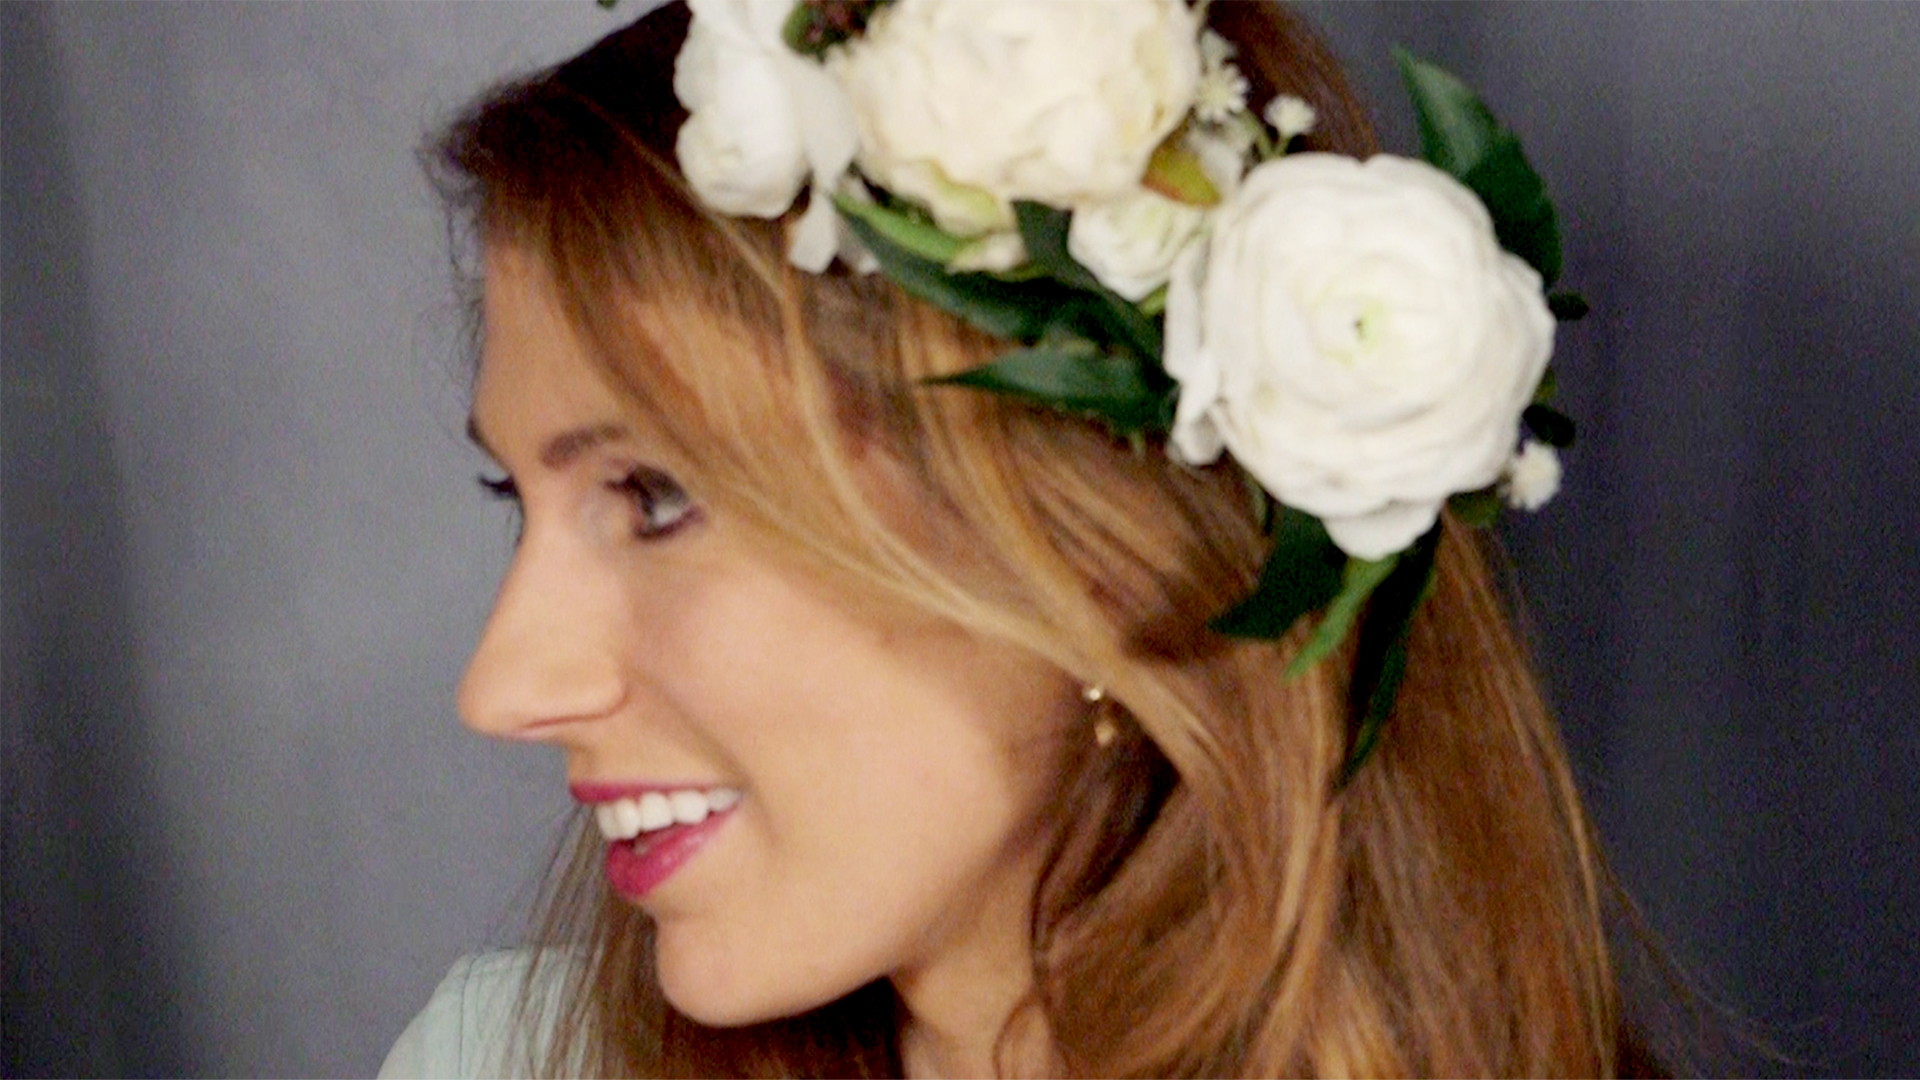 Flower power 3 easy steps to a diy flower crown today 3 easy steps to a diy flower crown today izmirmasajfo Images